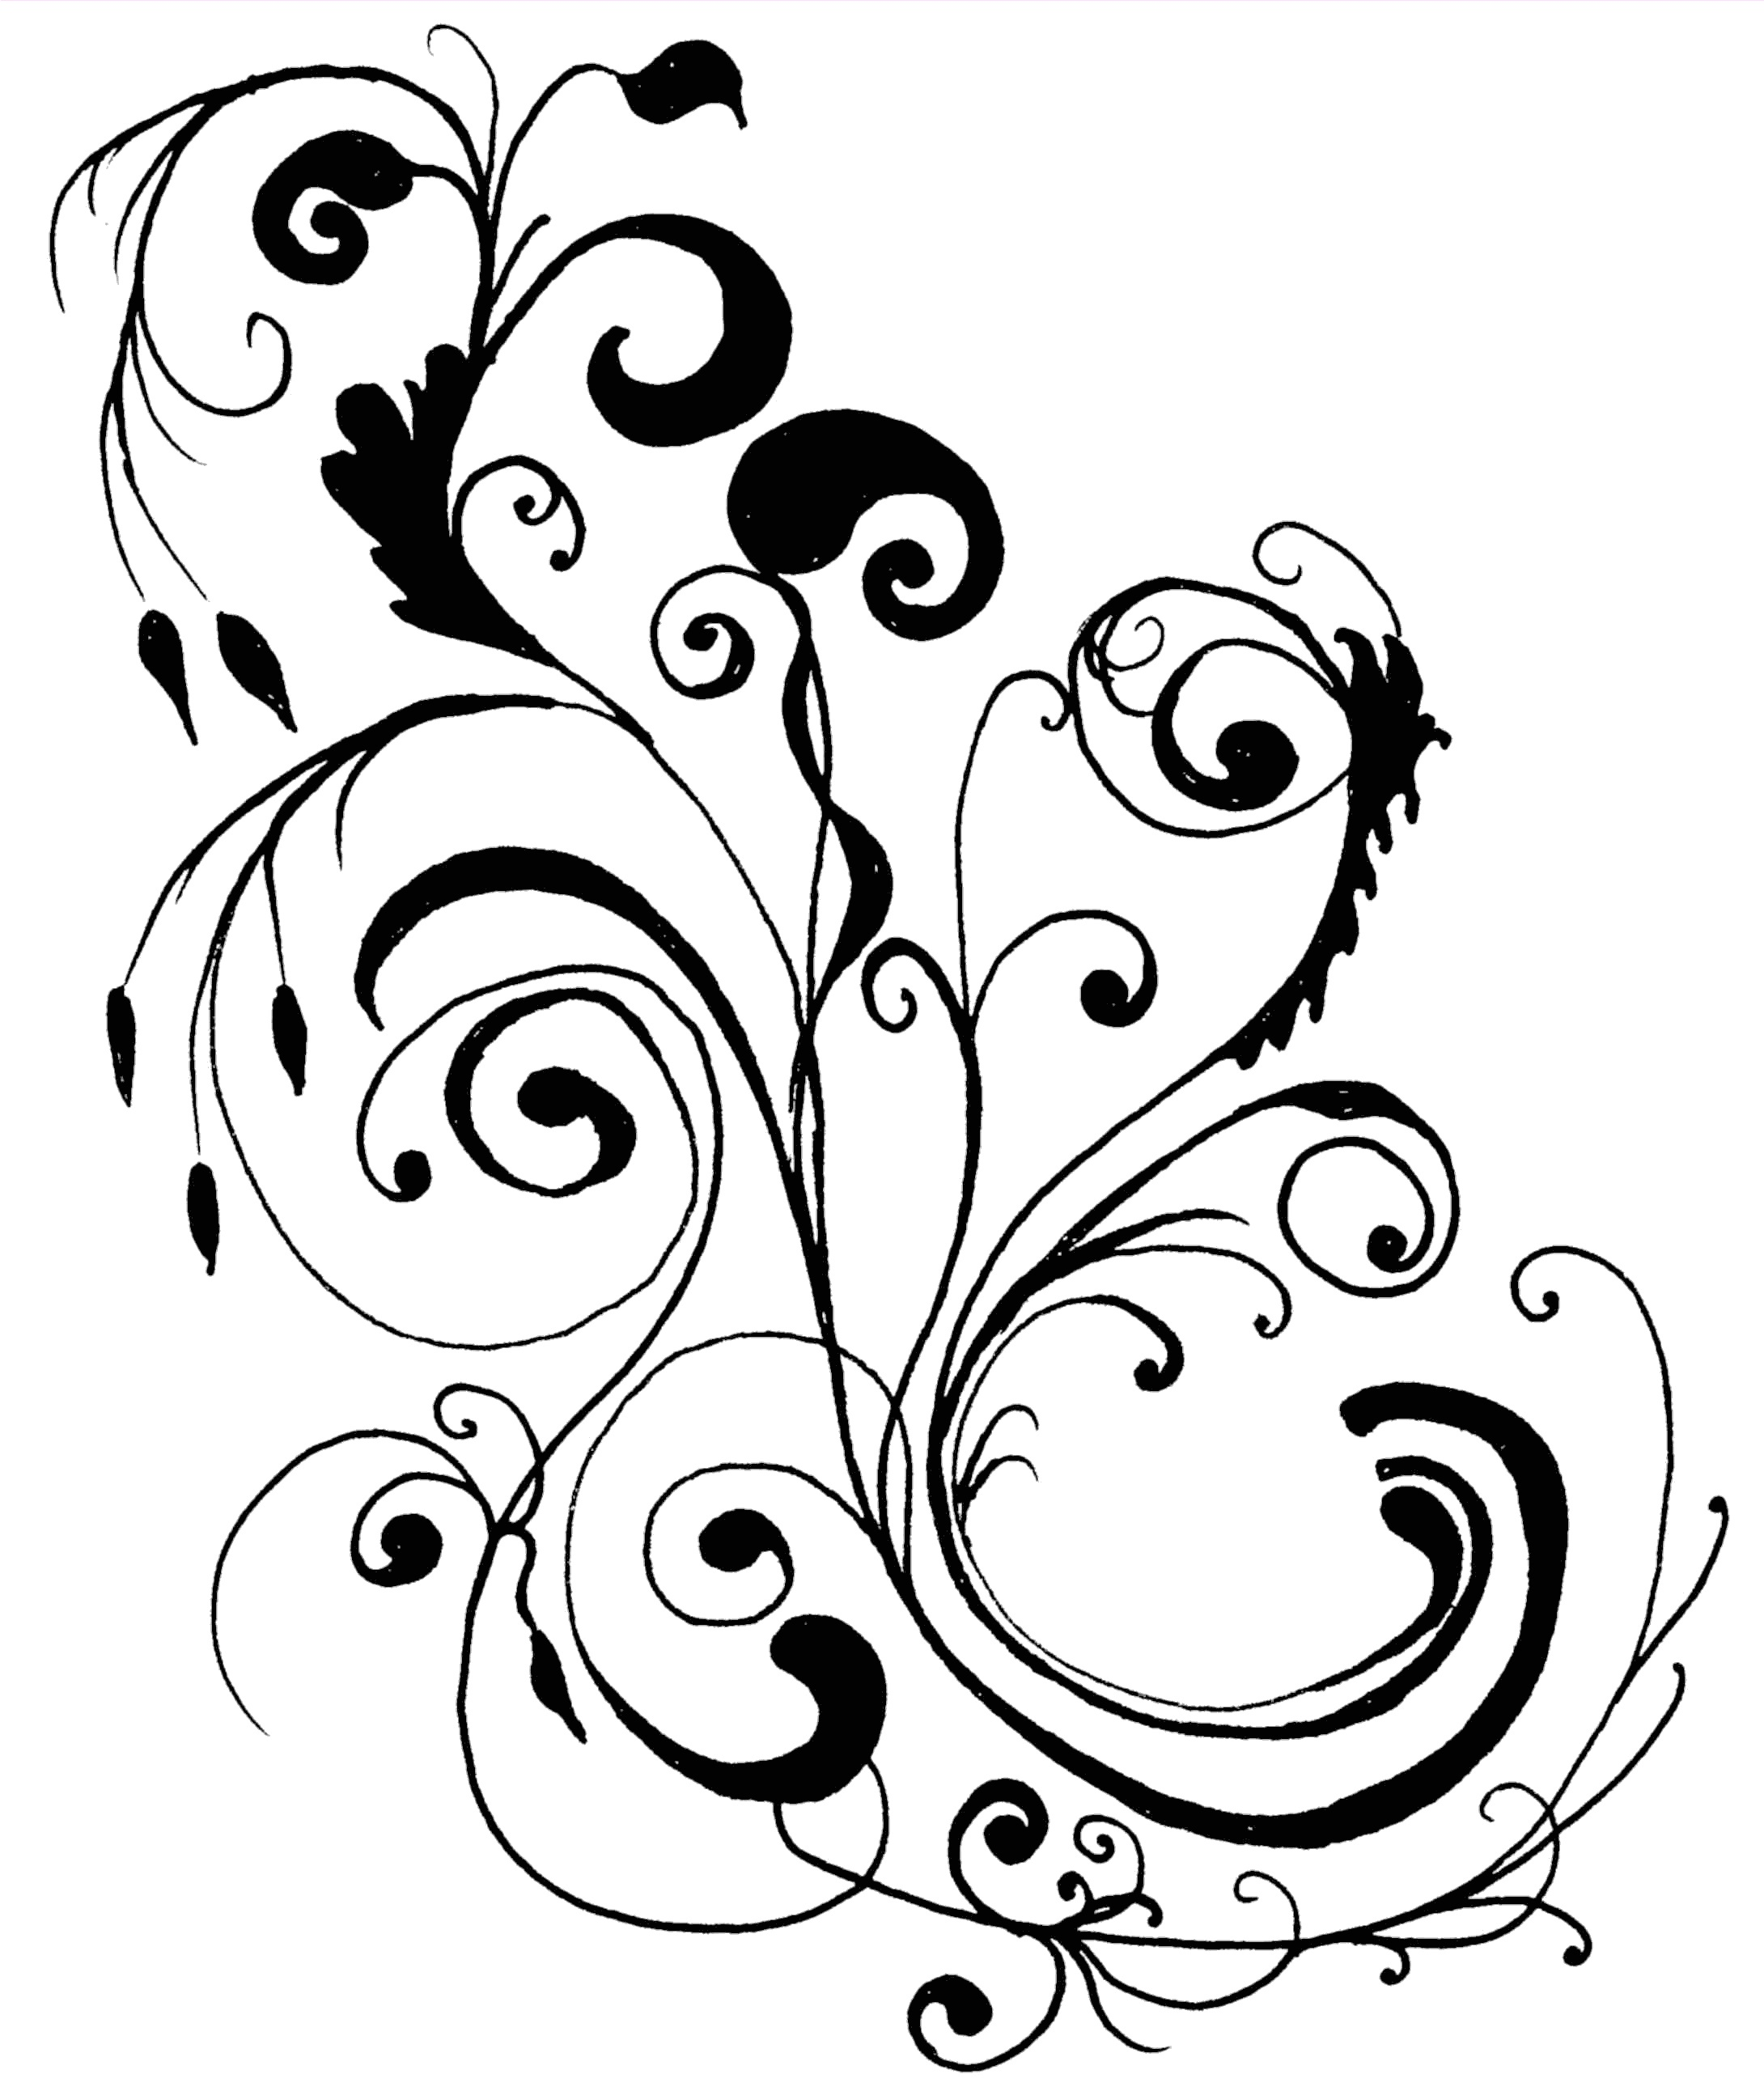 New Line Art Design : Line art designs clipart best